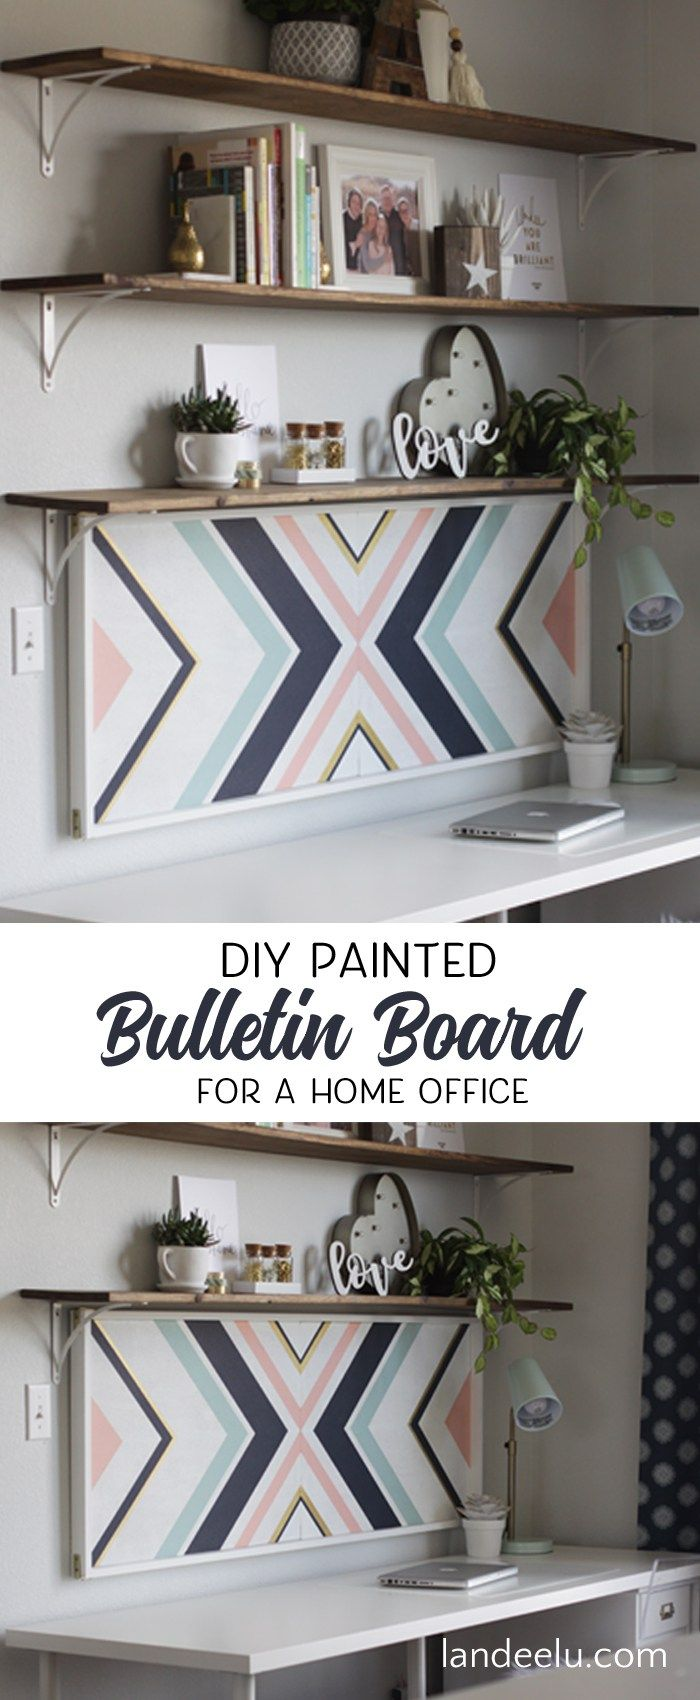 best 25 cork board organization ideas on pinterest diy cork